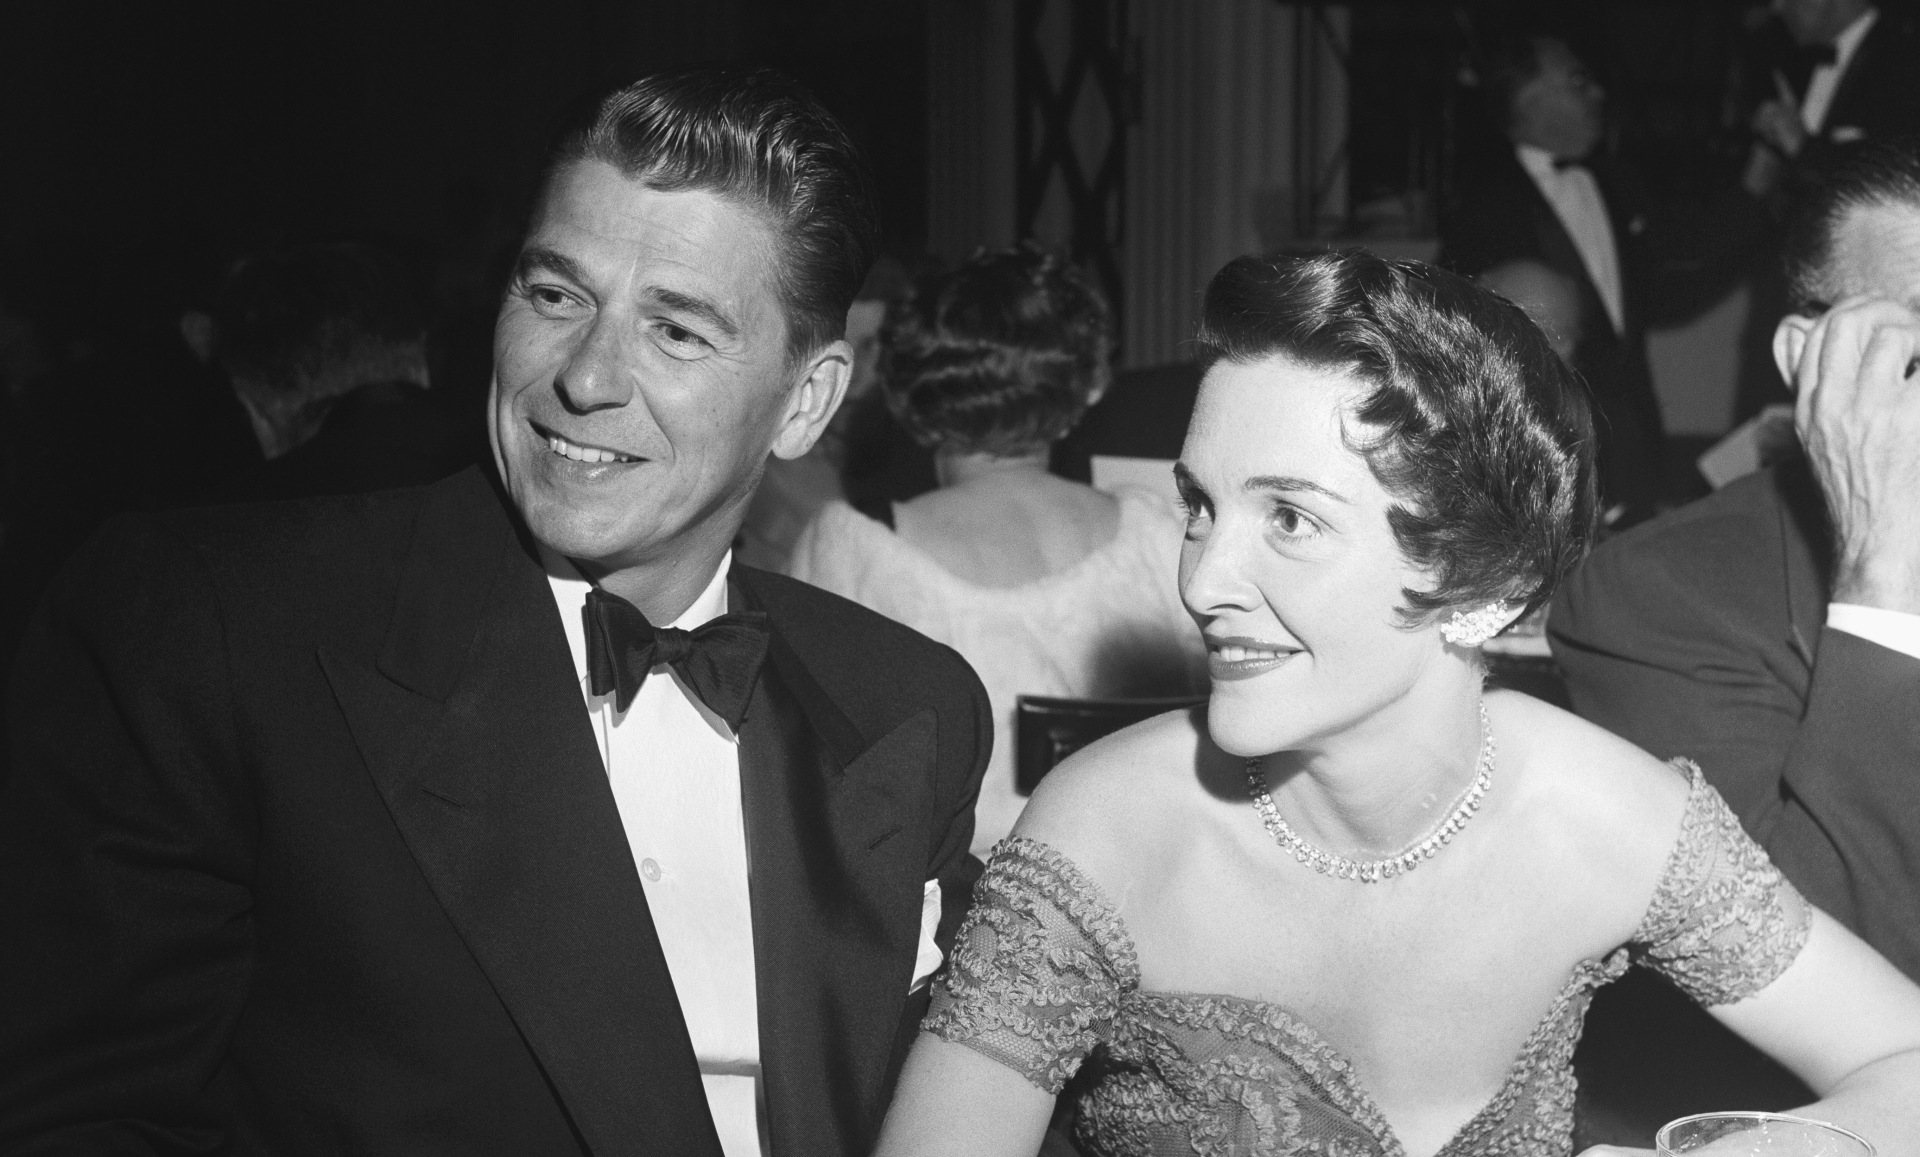 Ronald Reagan with wife Nancy